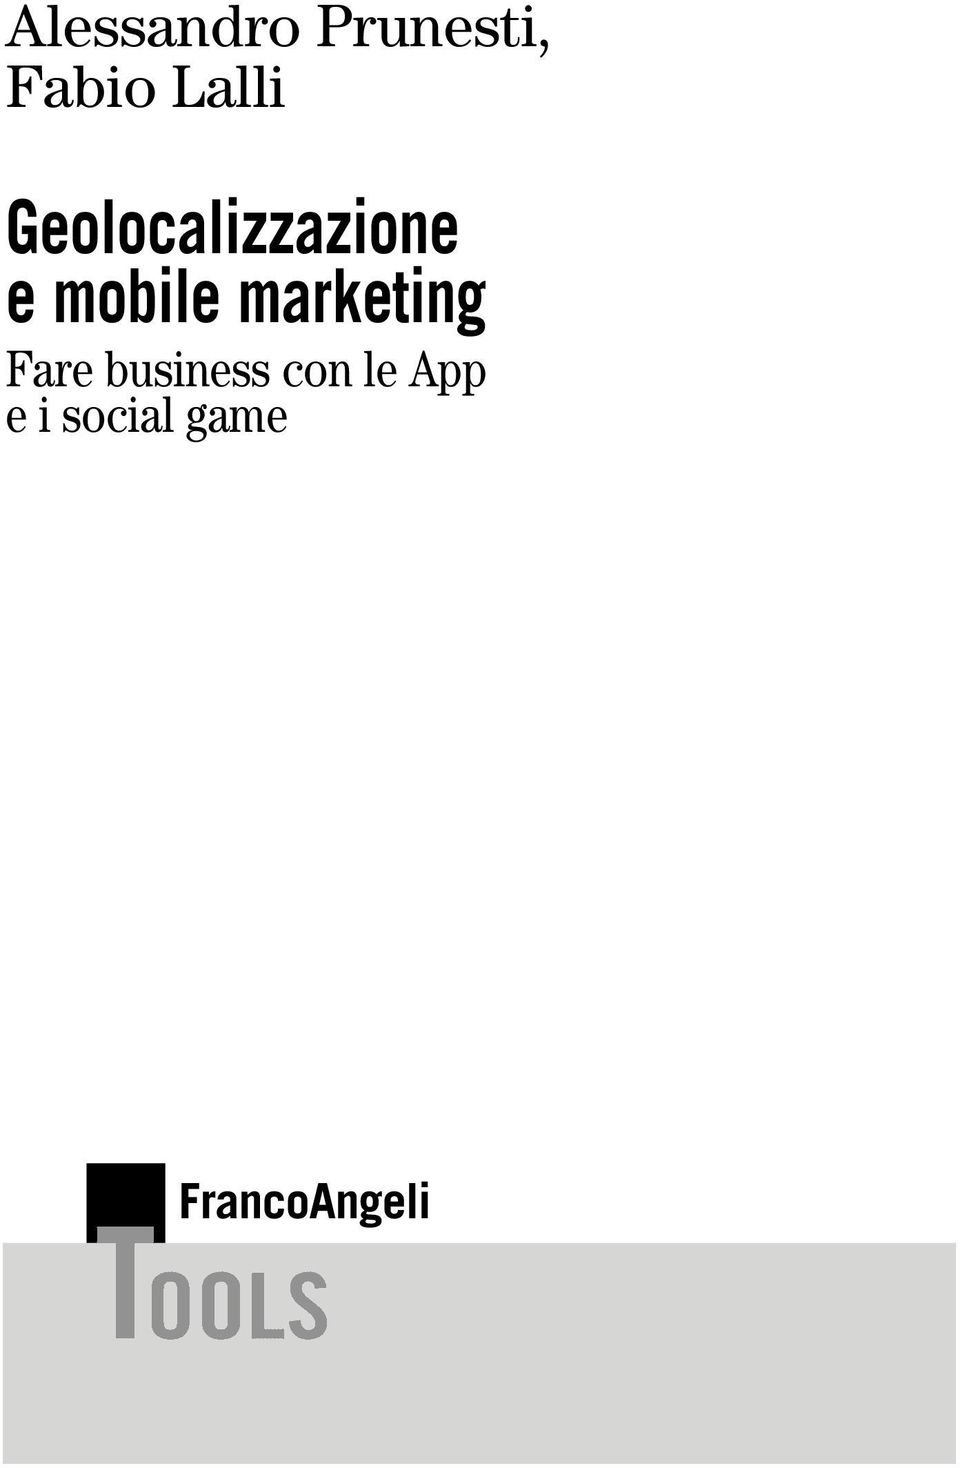 mobile marketing Fare business